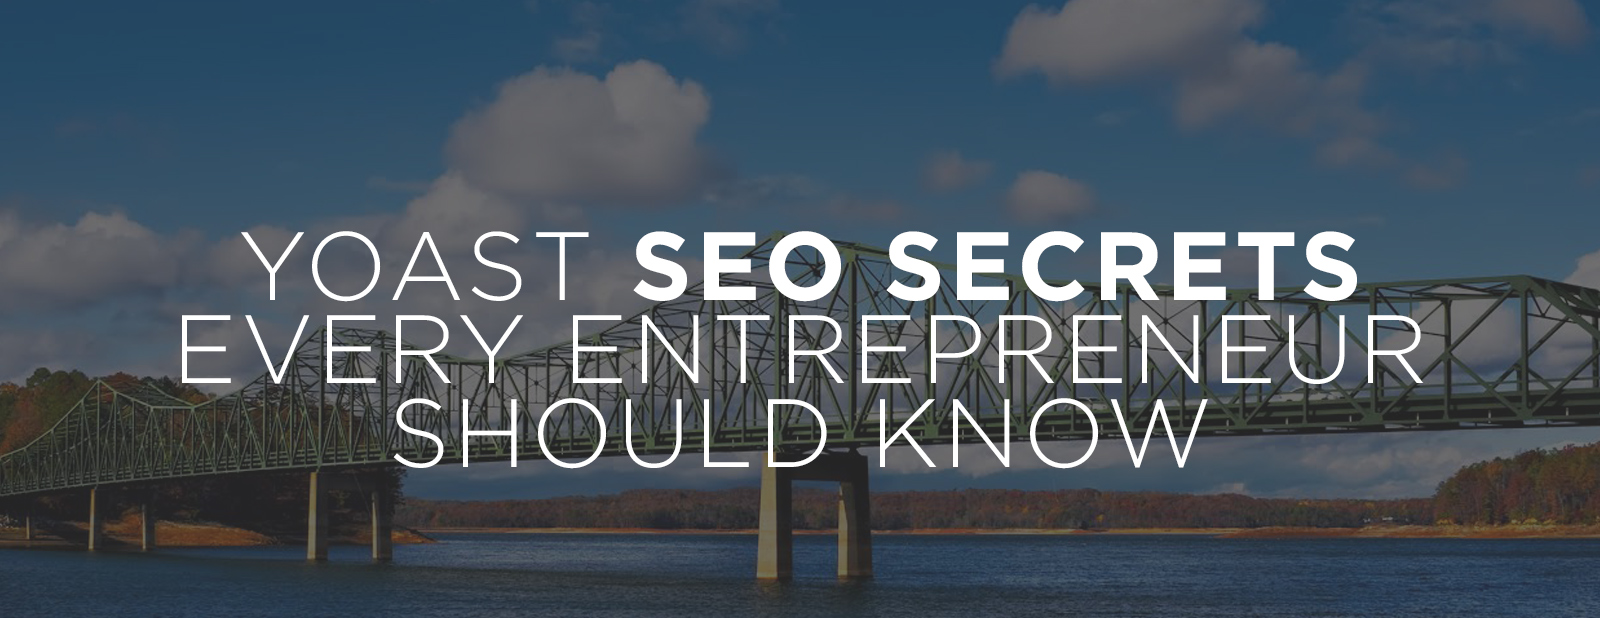 Yoast SEO Secrets | via the Rising Tide Society